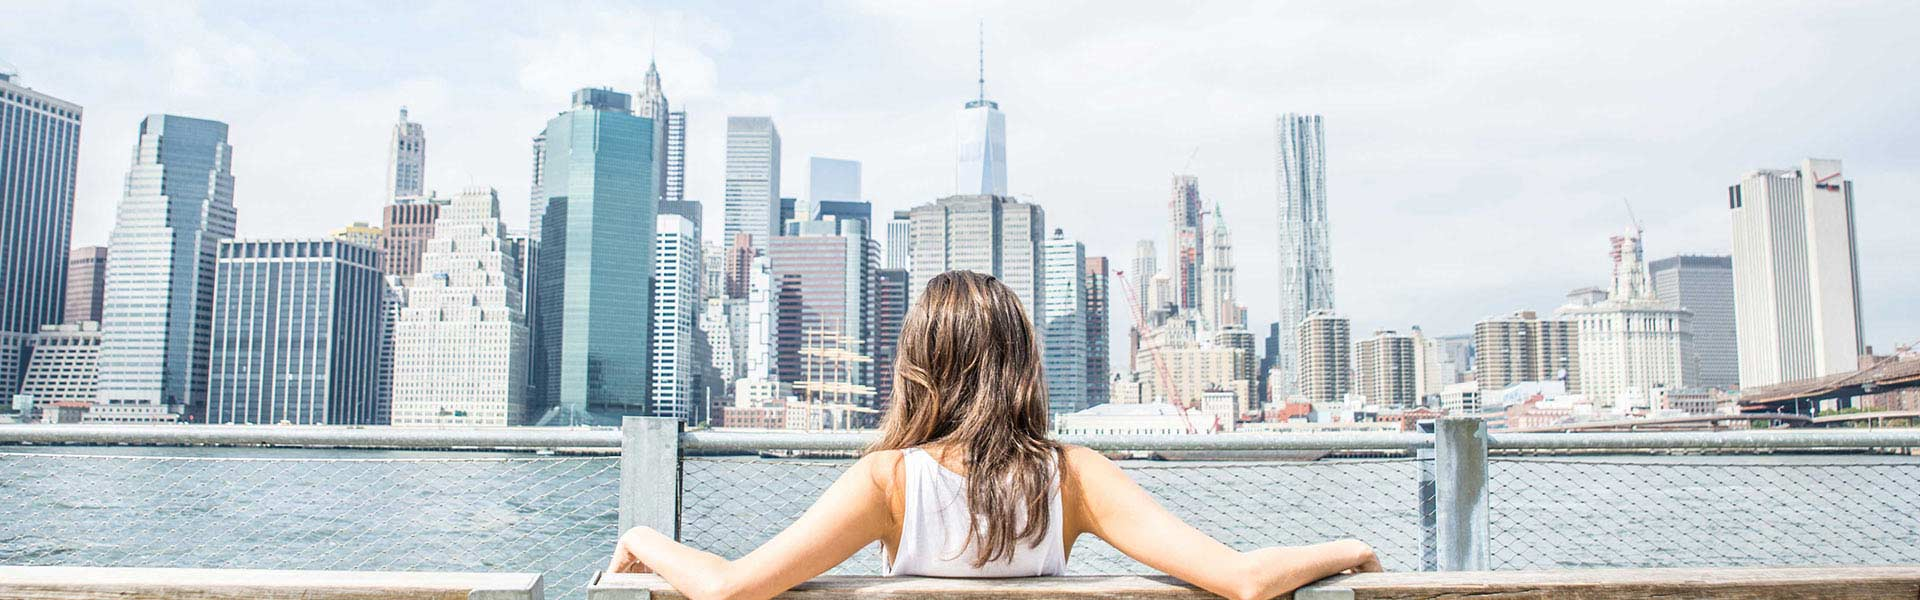 Girl looking at New York City skyline